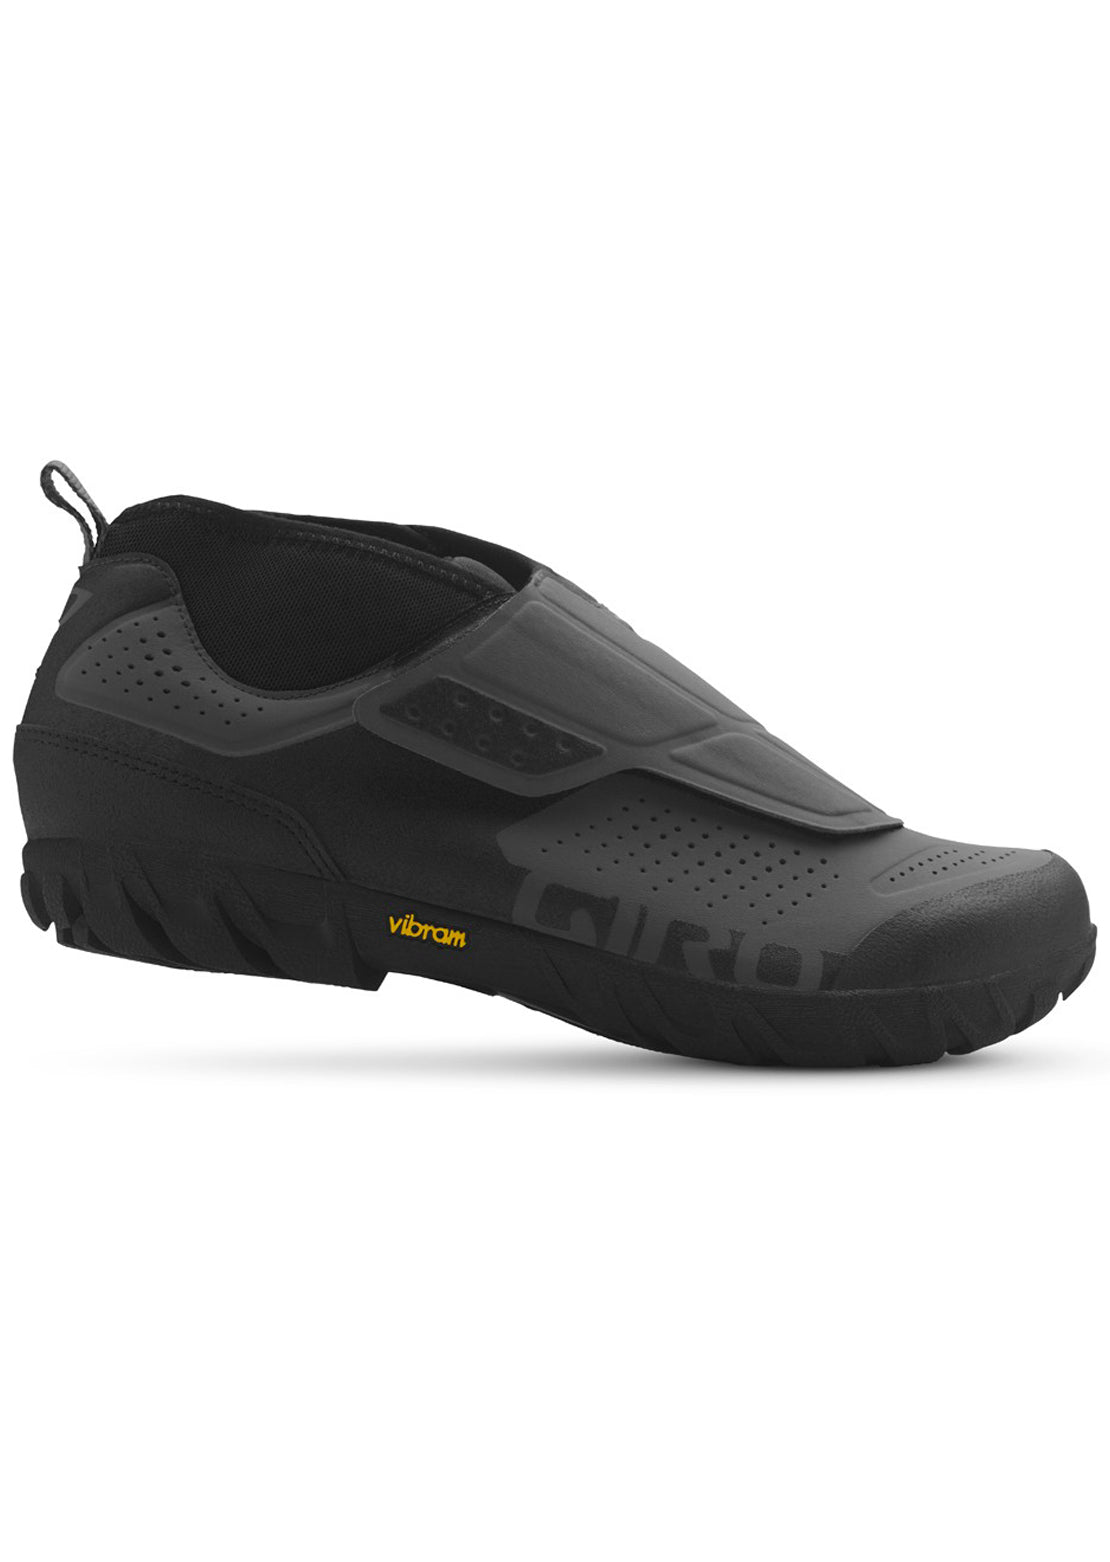 Giro Men's Terraduro Mid Clipless Bike Shoes